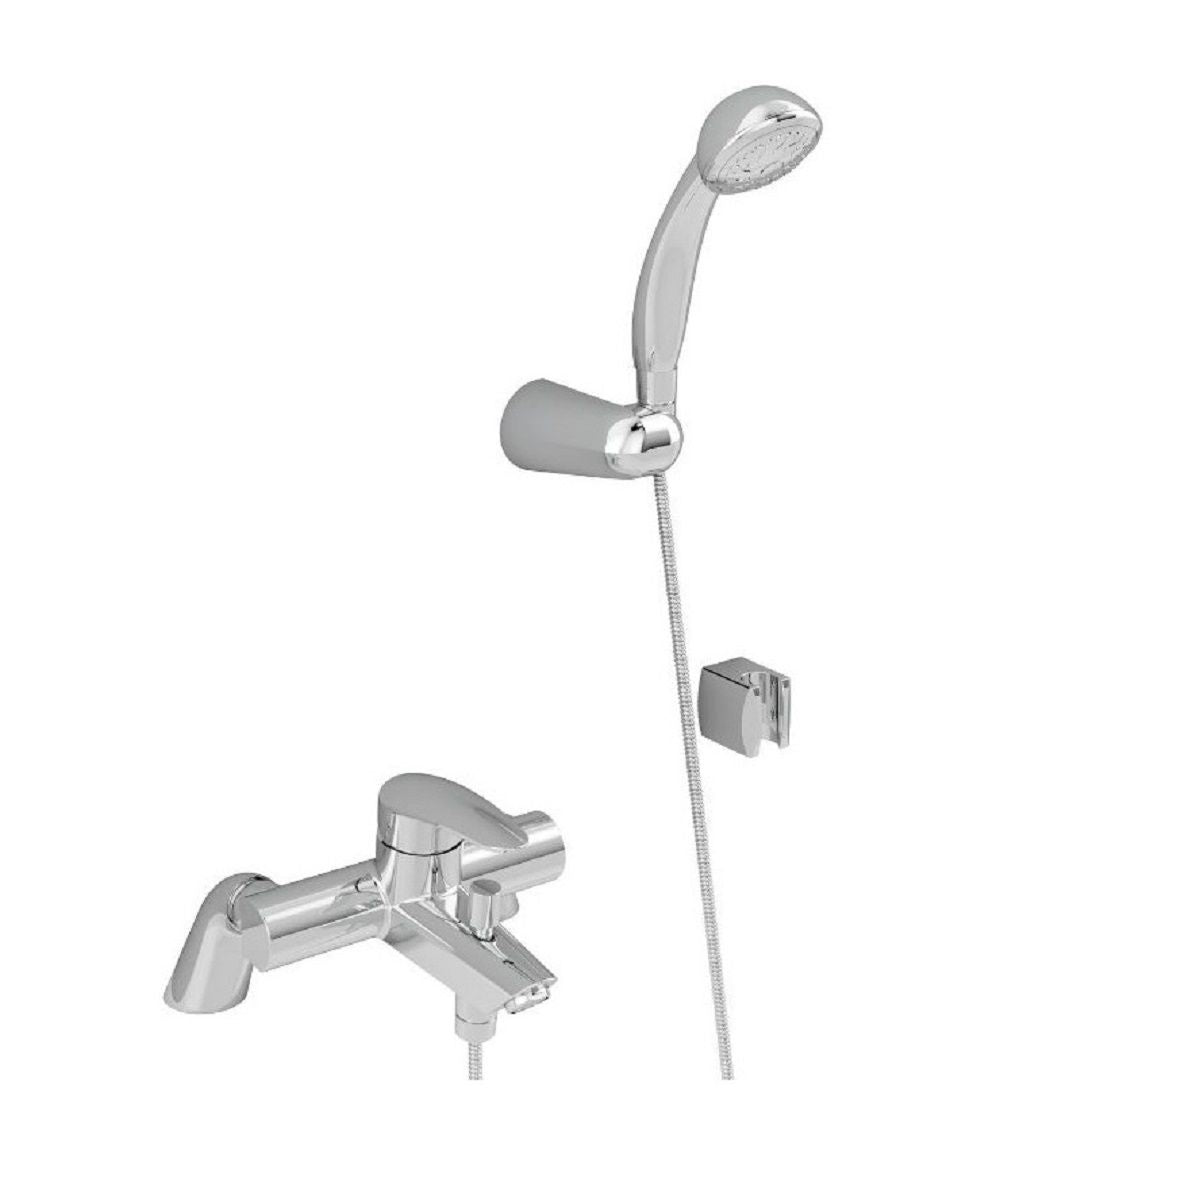 Vitra Dynamic S Bath Shower Mixer - Blue Sky Bathrooms Ltd